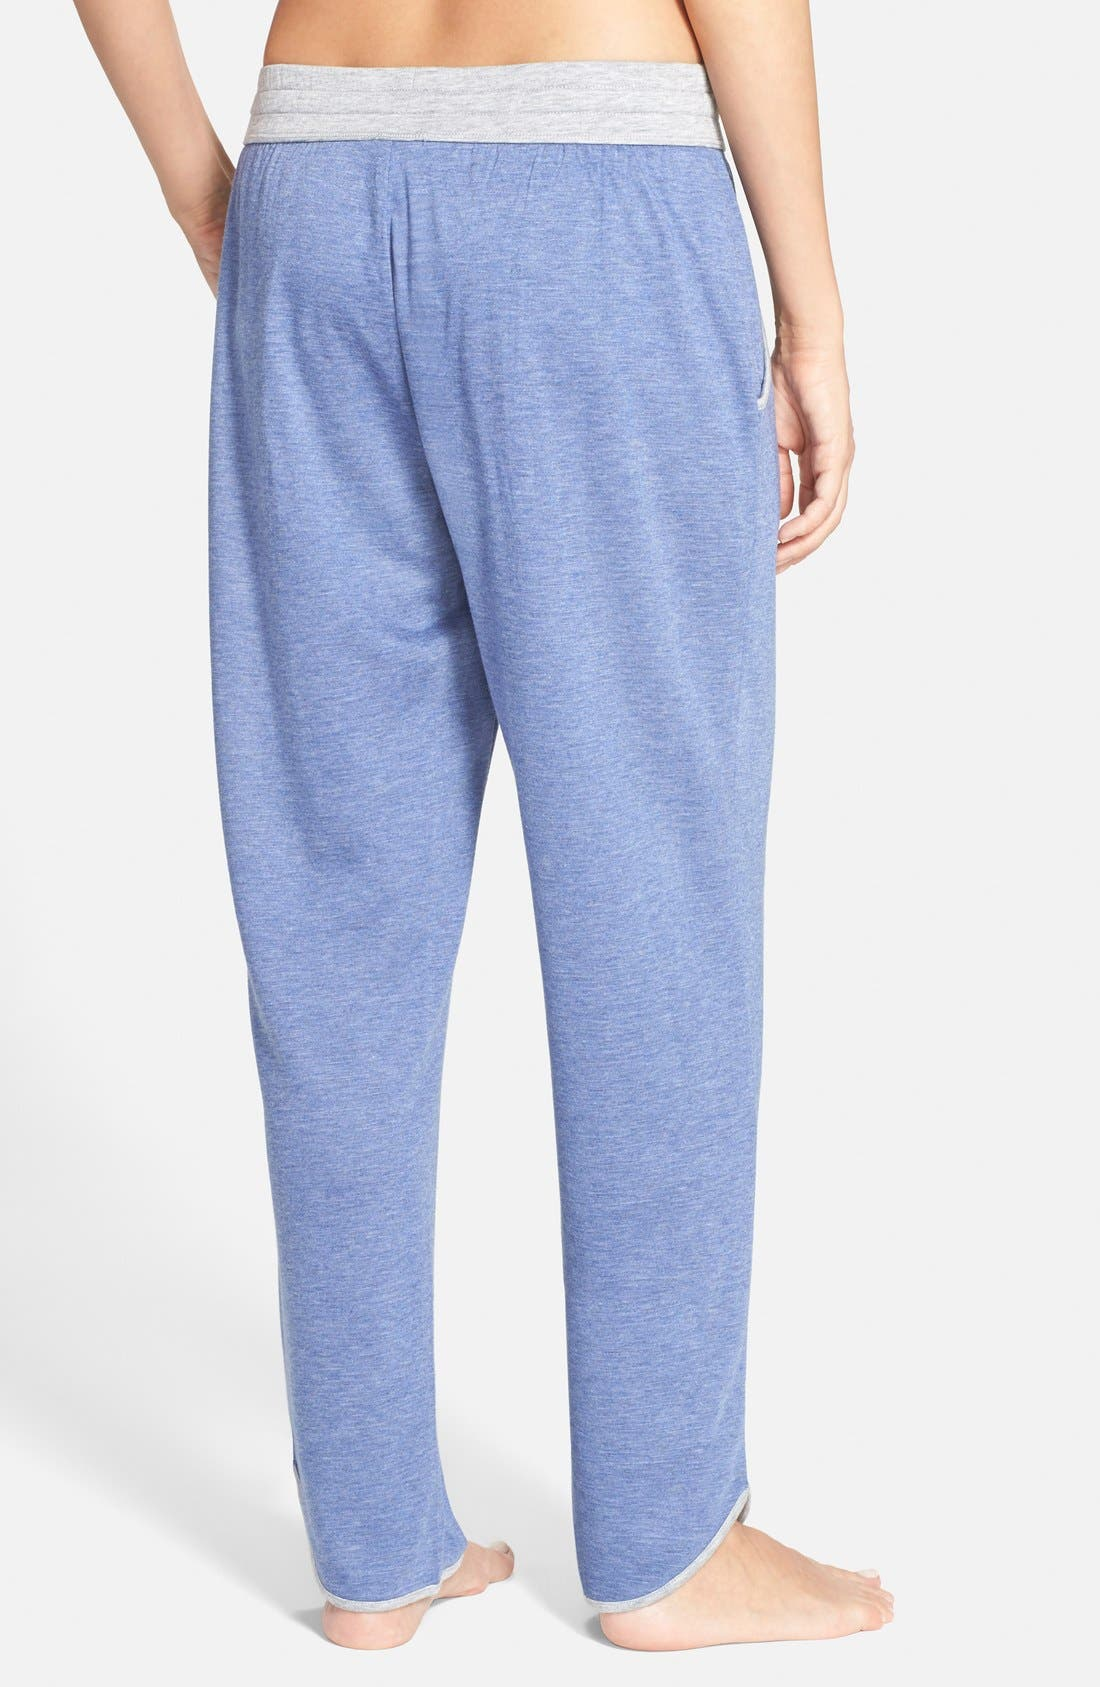 Alternate Image 2  - Carole Hochman Designs Ankle Lounge Pants